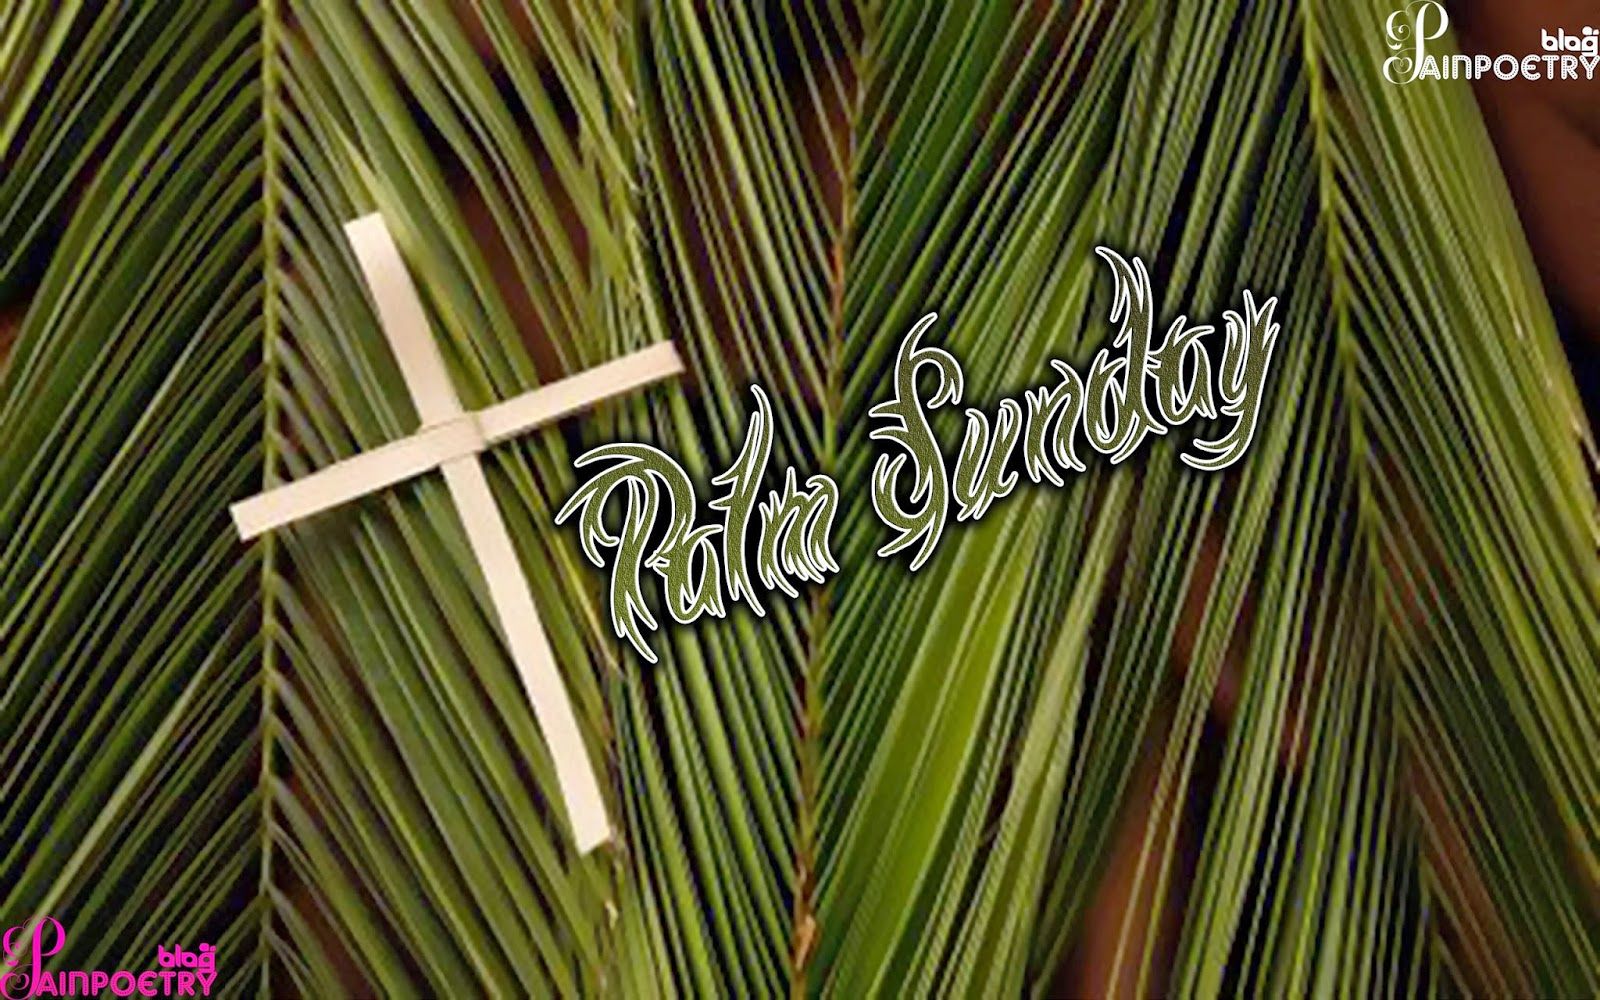 Palm-Sunday-HD-Wide